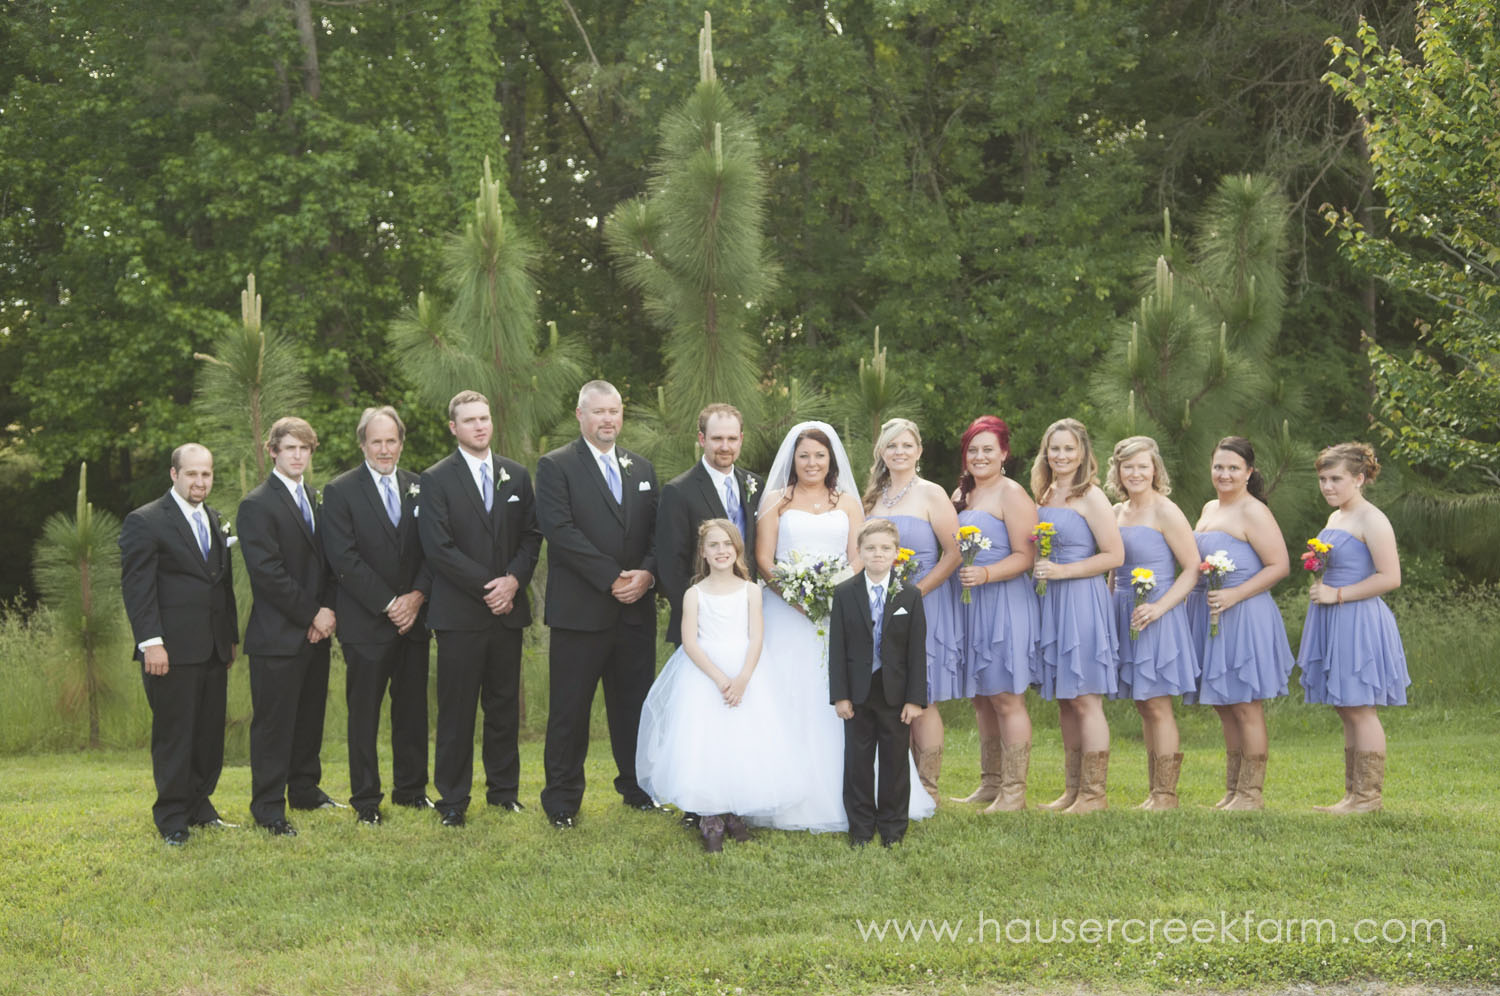 wedding-party-at-hauser-creek-farm-a-photo-by-ashley-0774.jpg